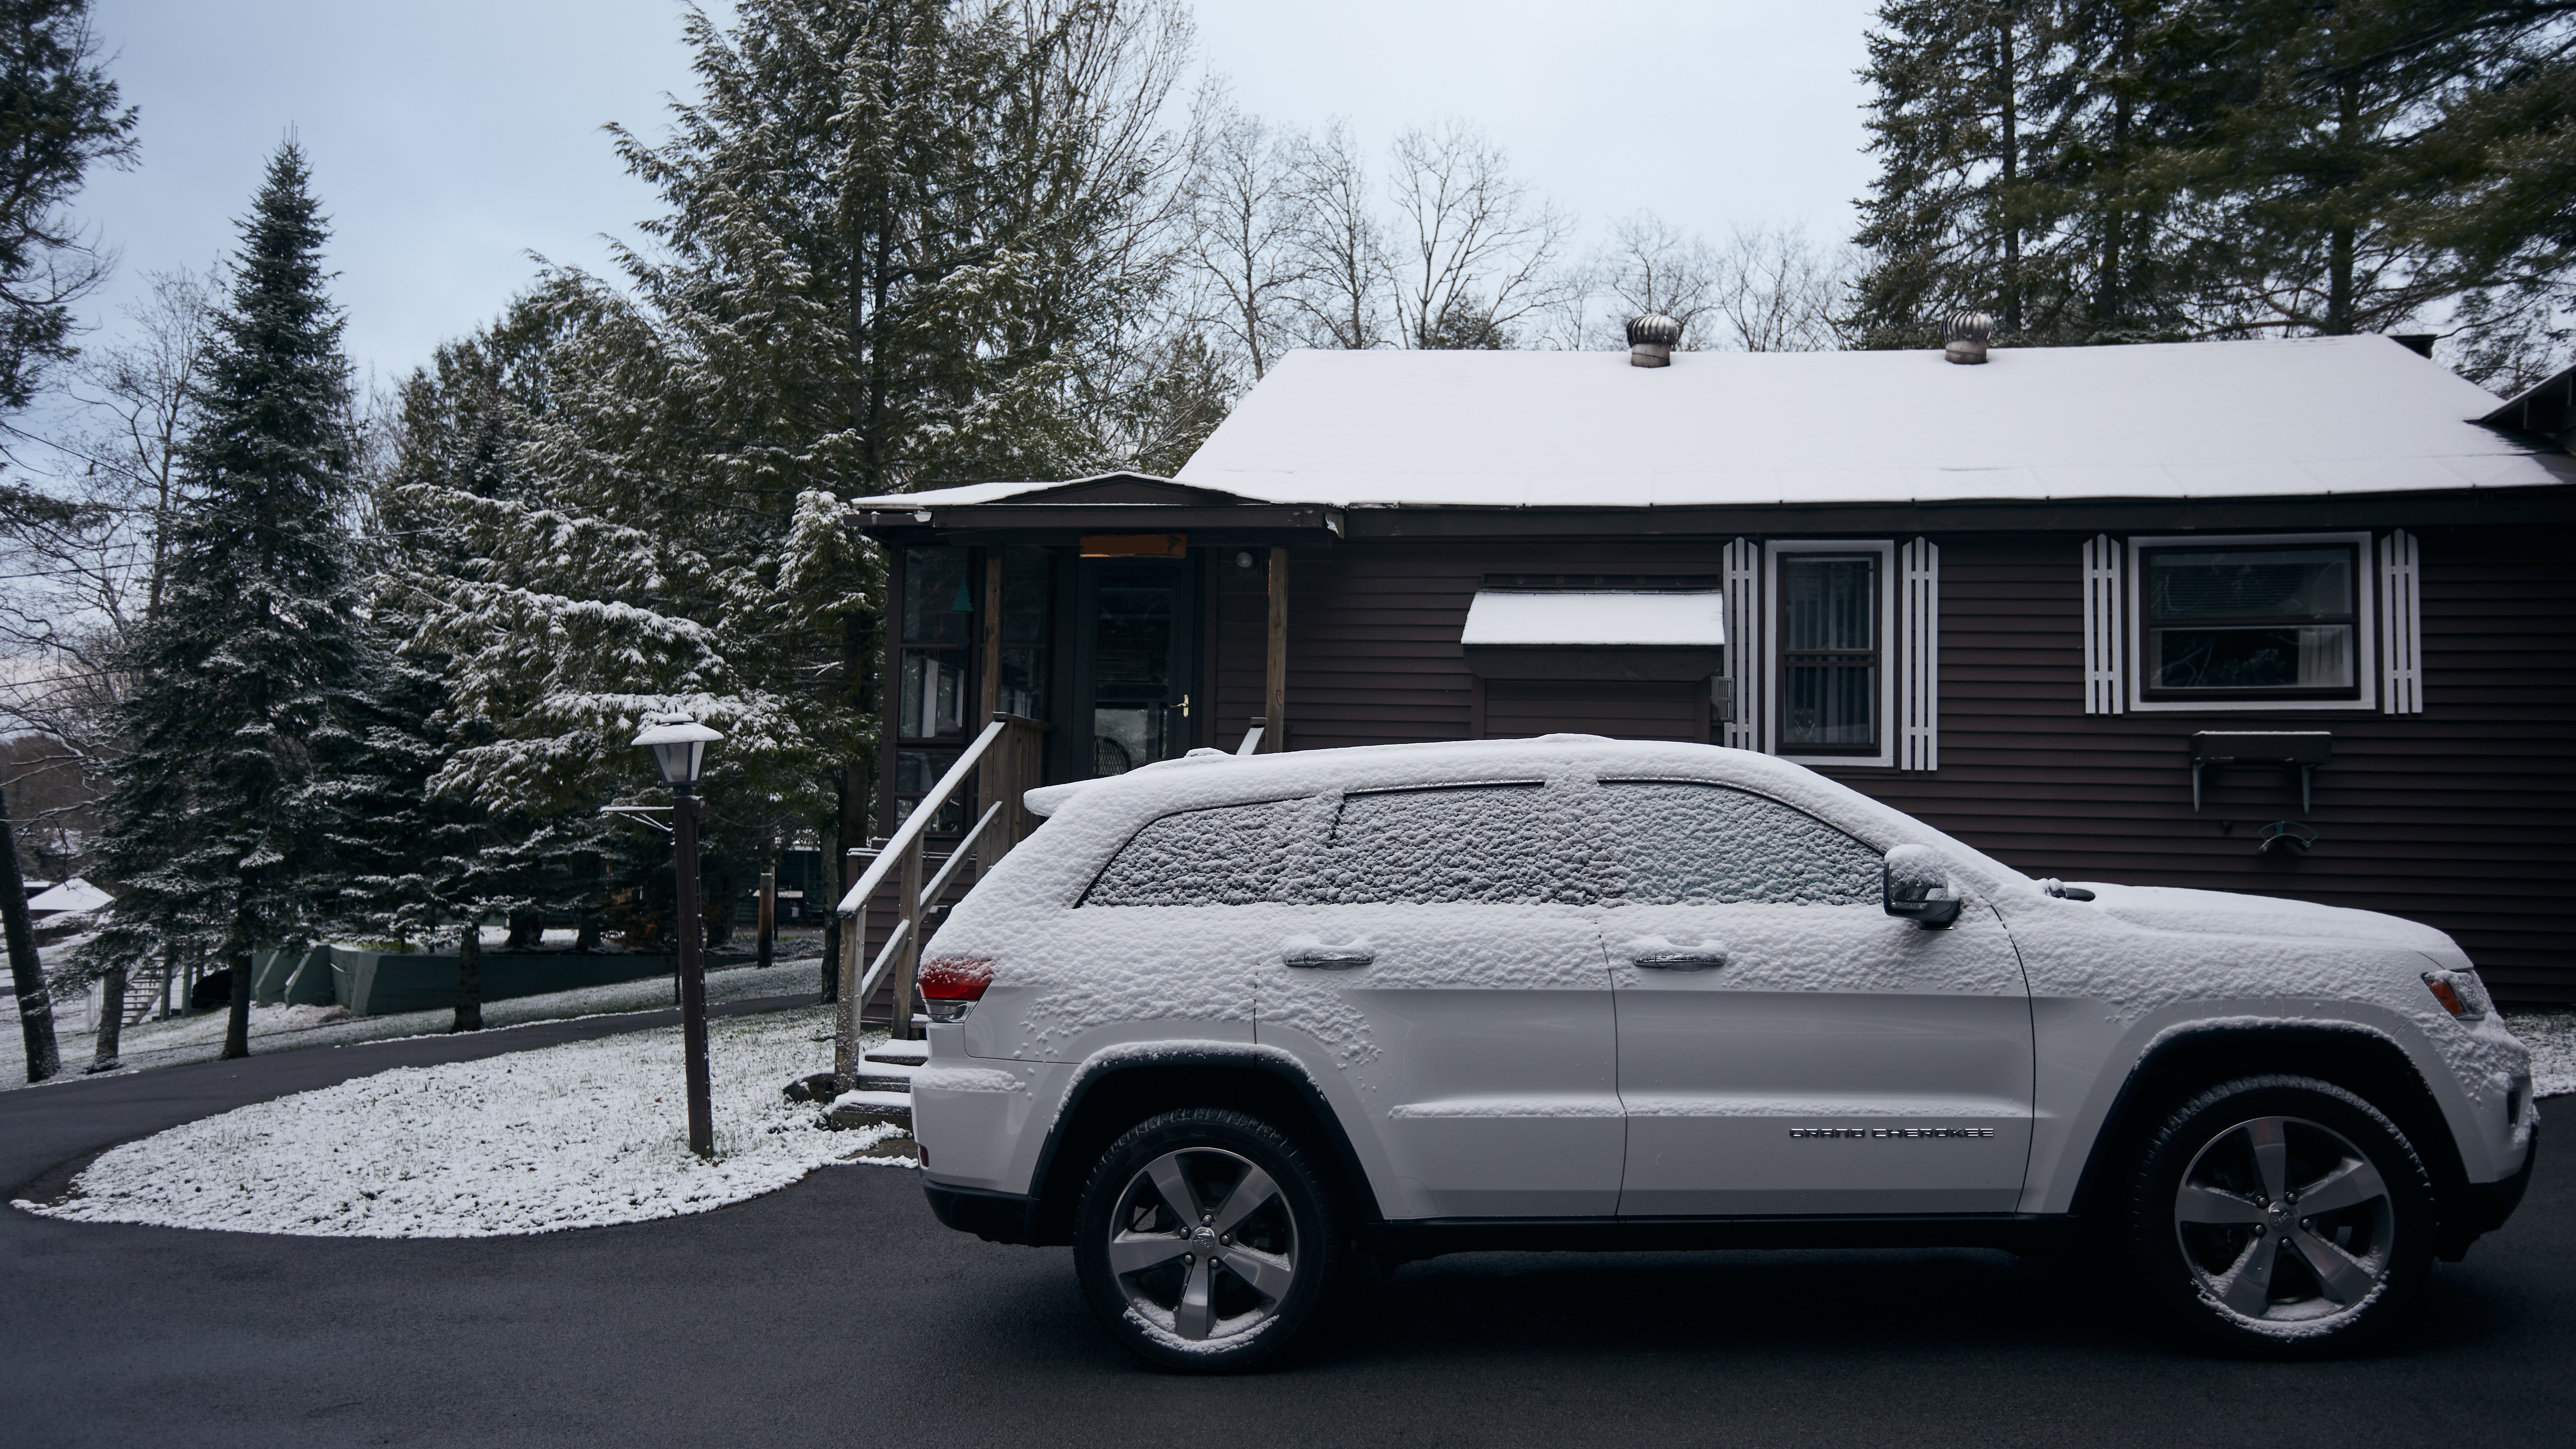 Jeep Grand Cherokee covered in snow, parked in front of house.